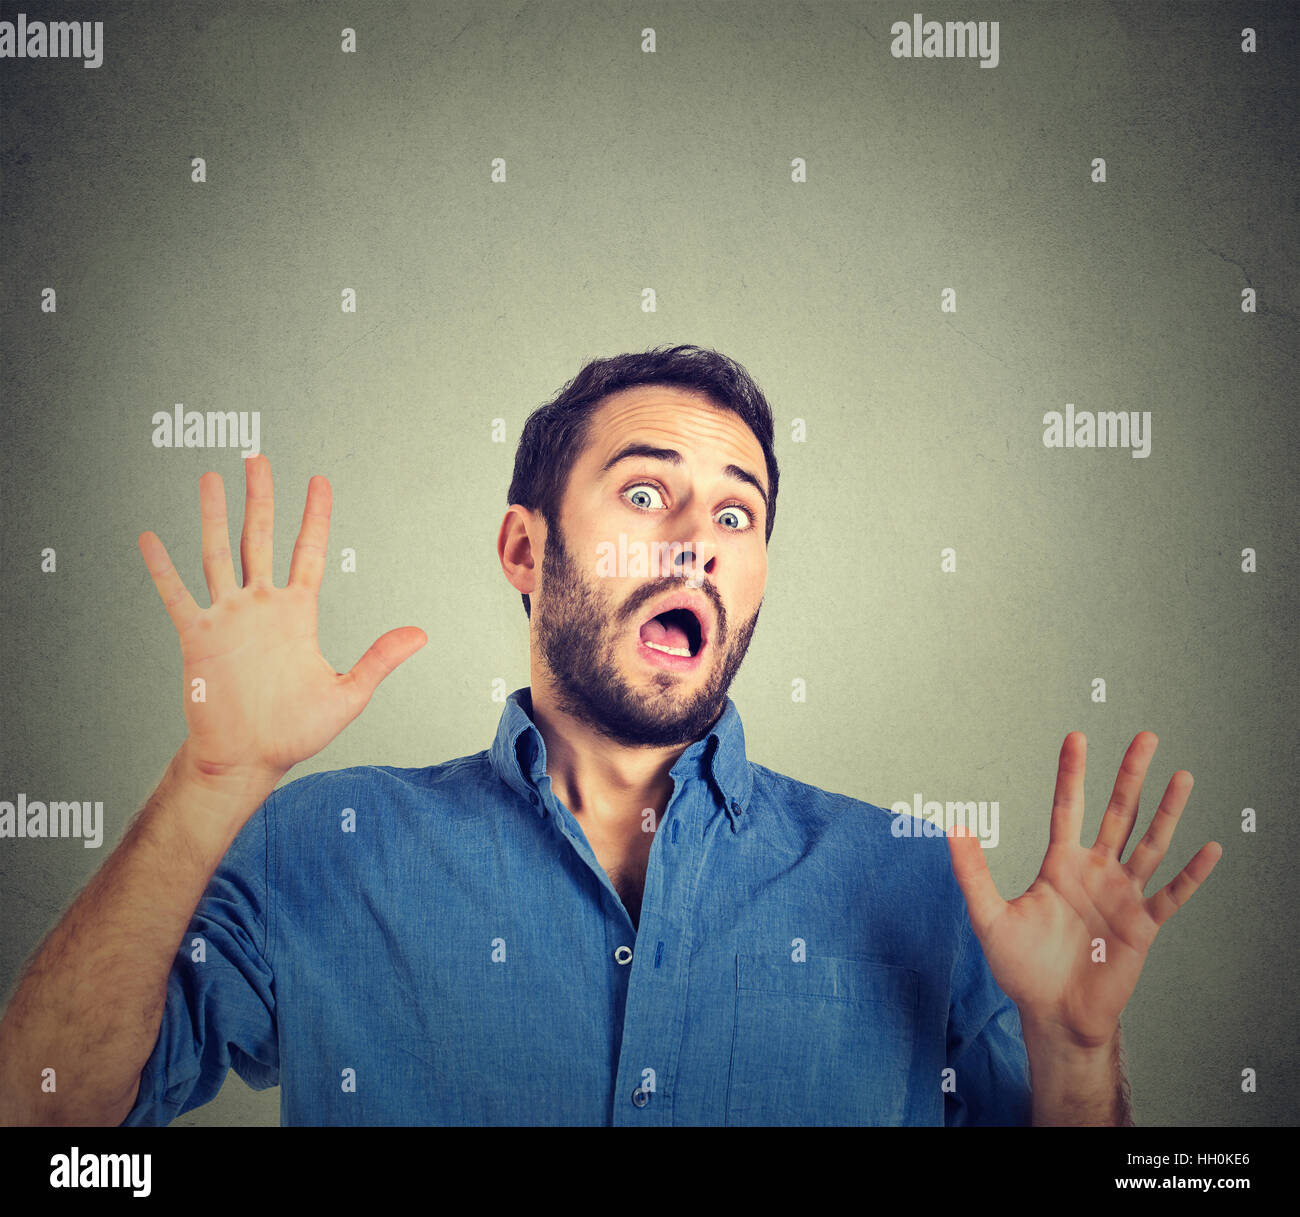 scared man on gray wall background - Stock Image